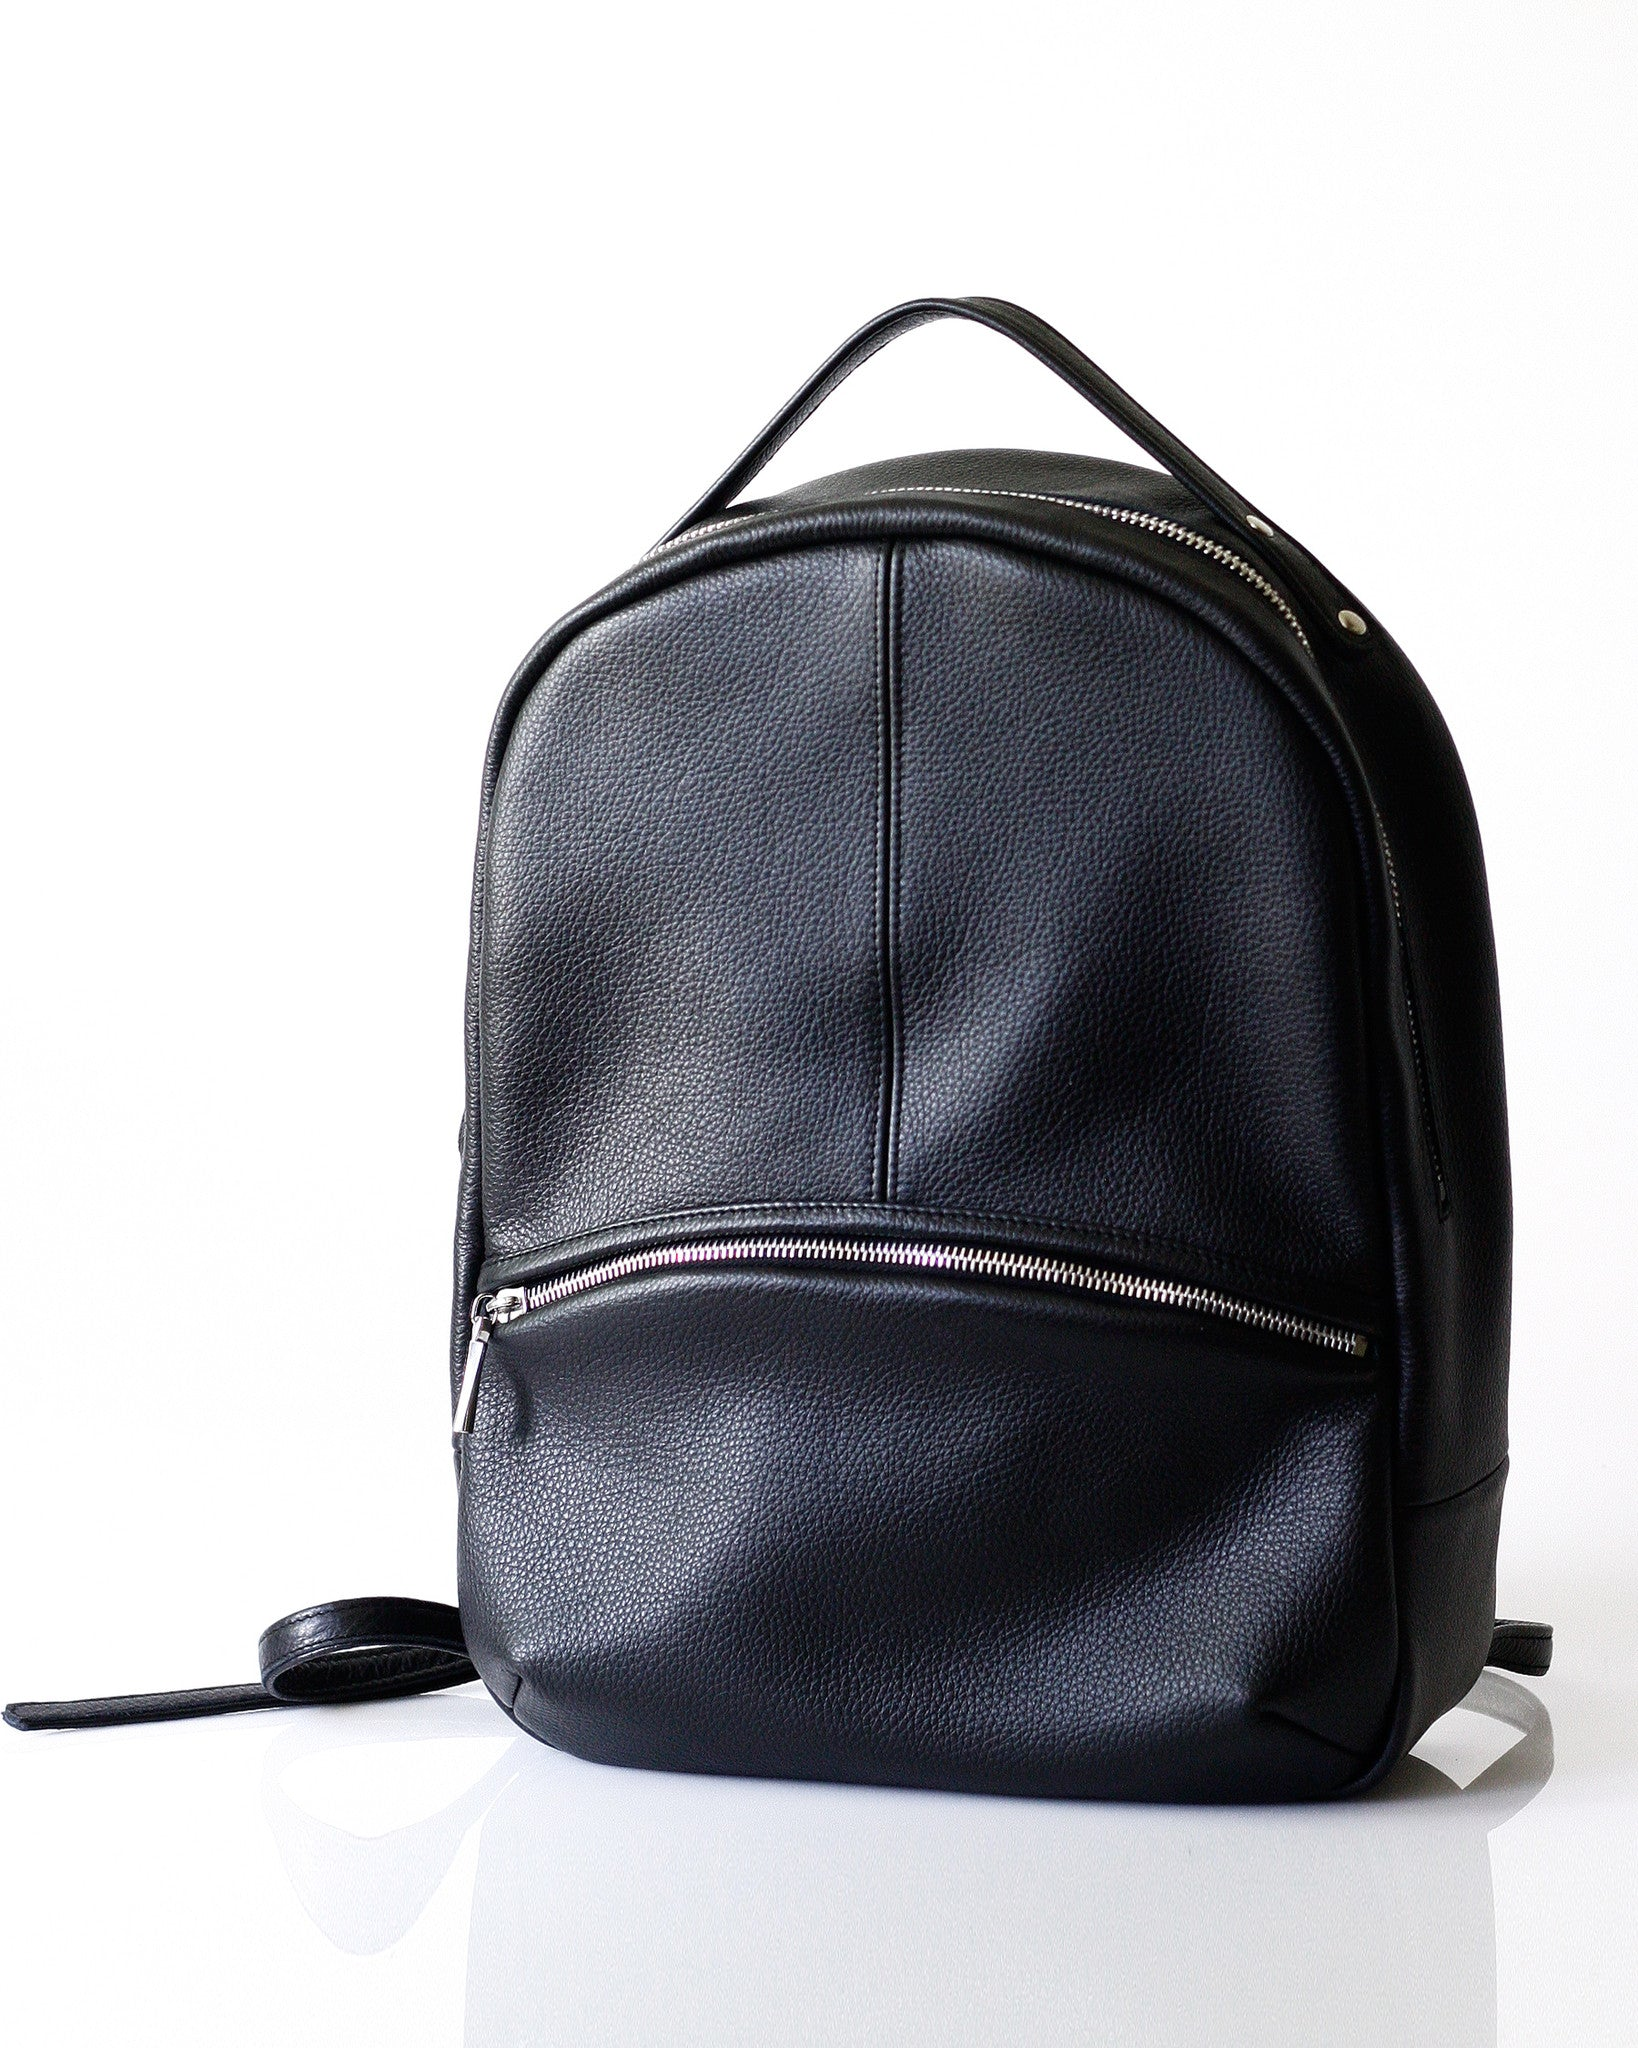 Kanye Backpack - Opelle bag Permanent Collection - Opelle leather handbag handcrafted leather bag toronto Canada